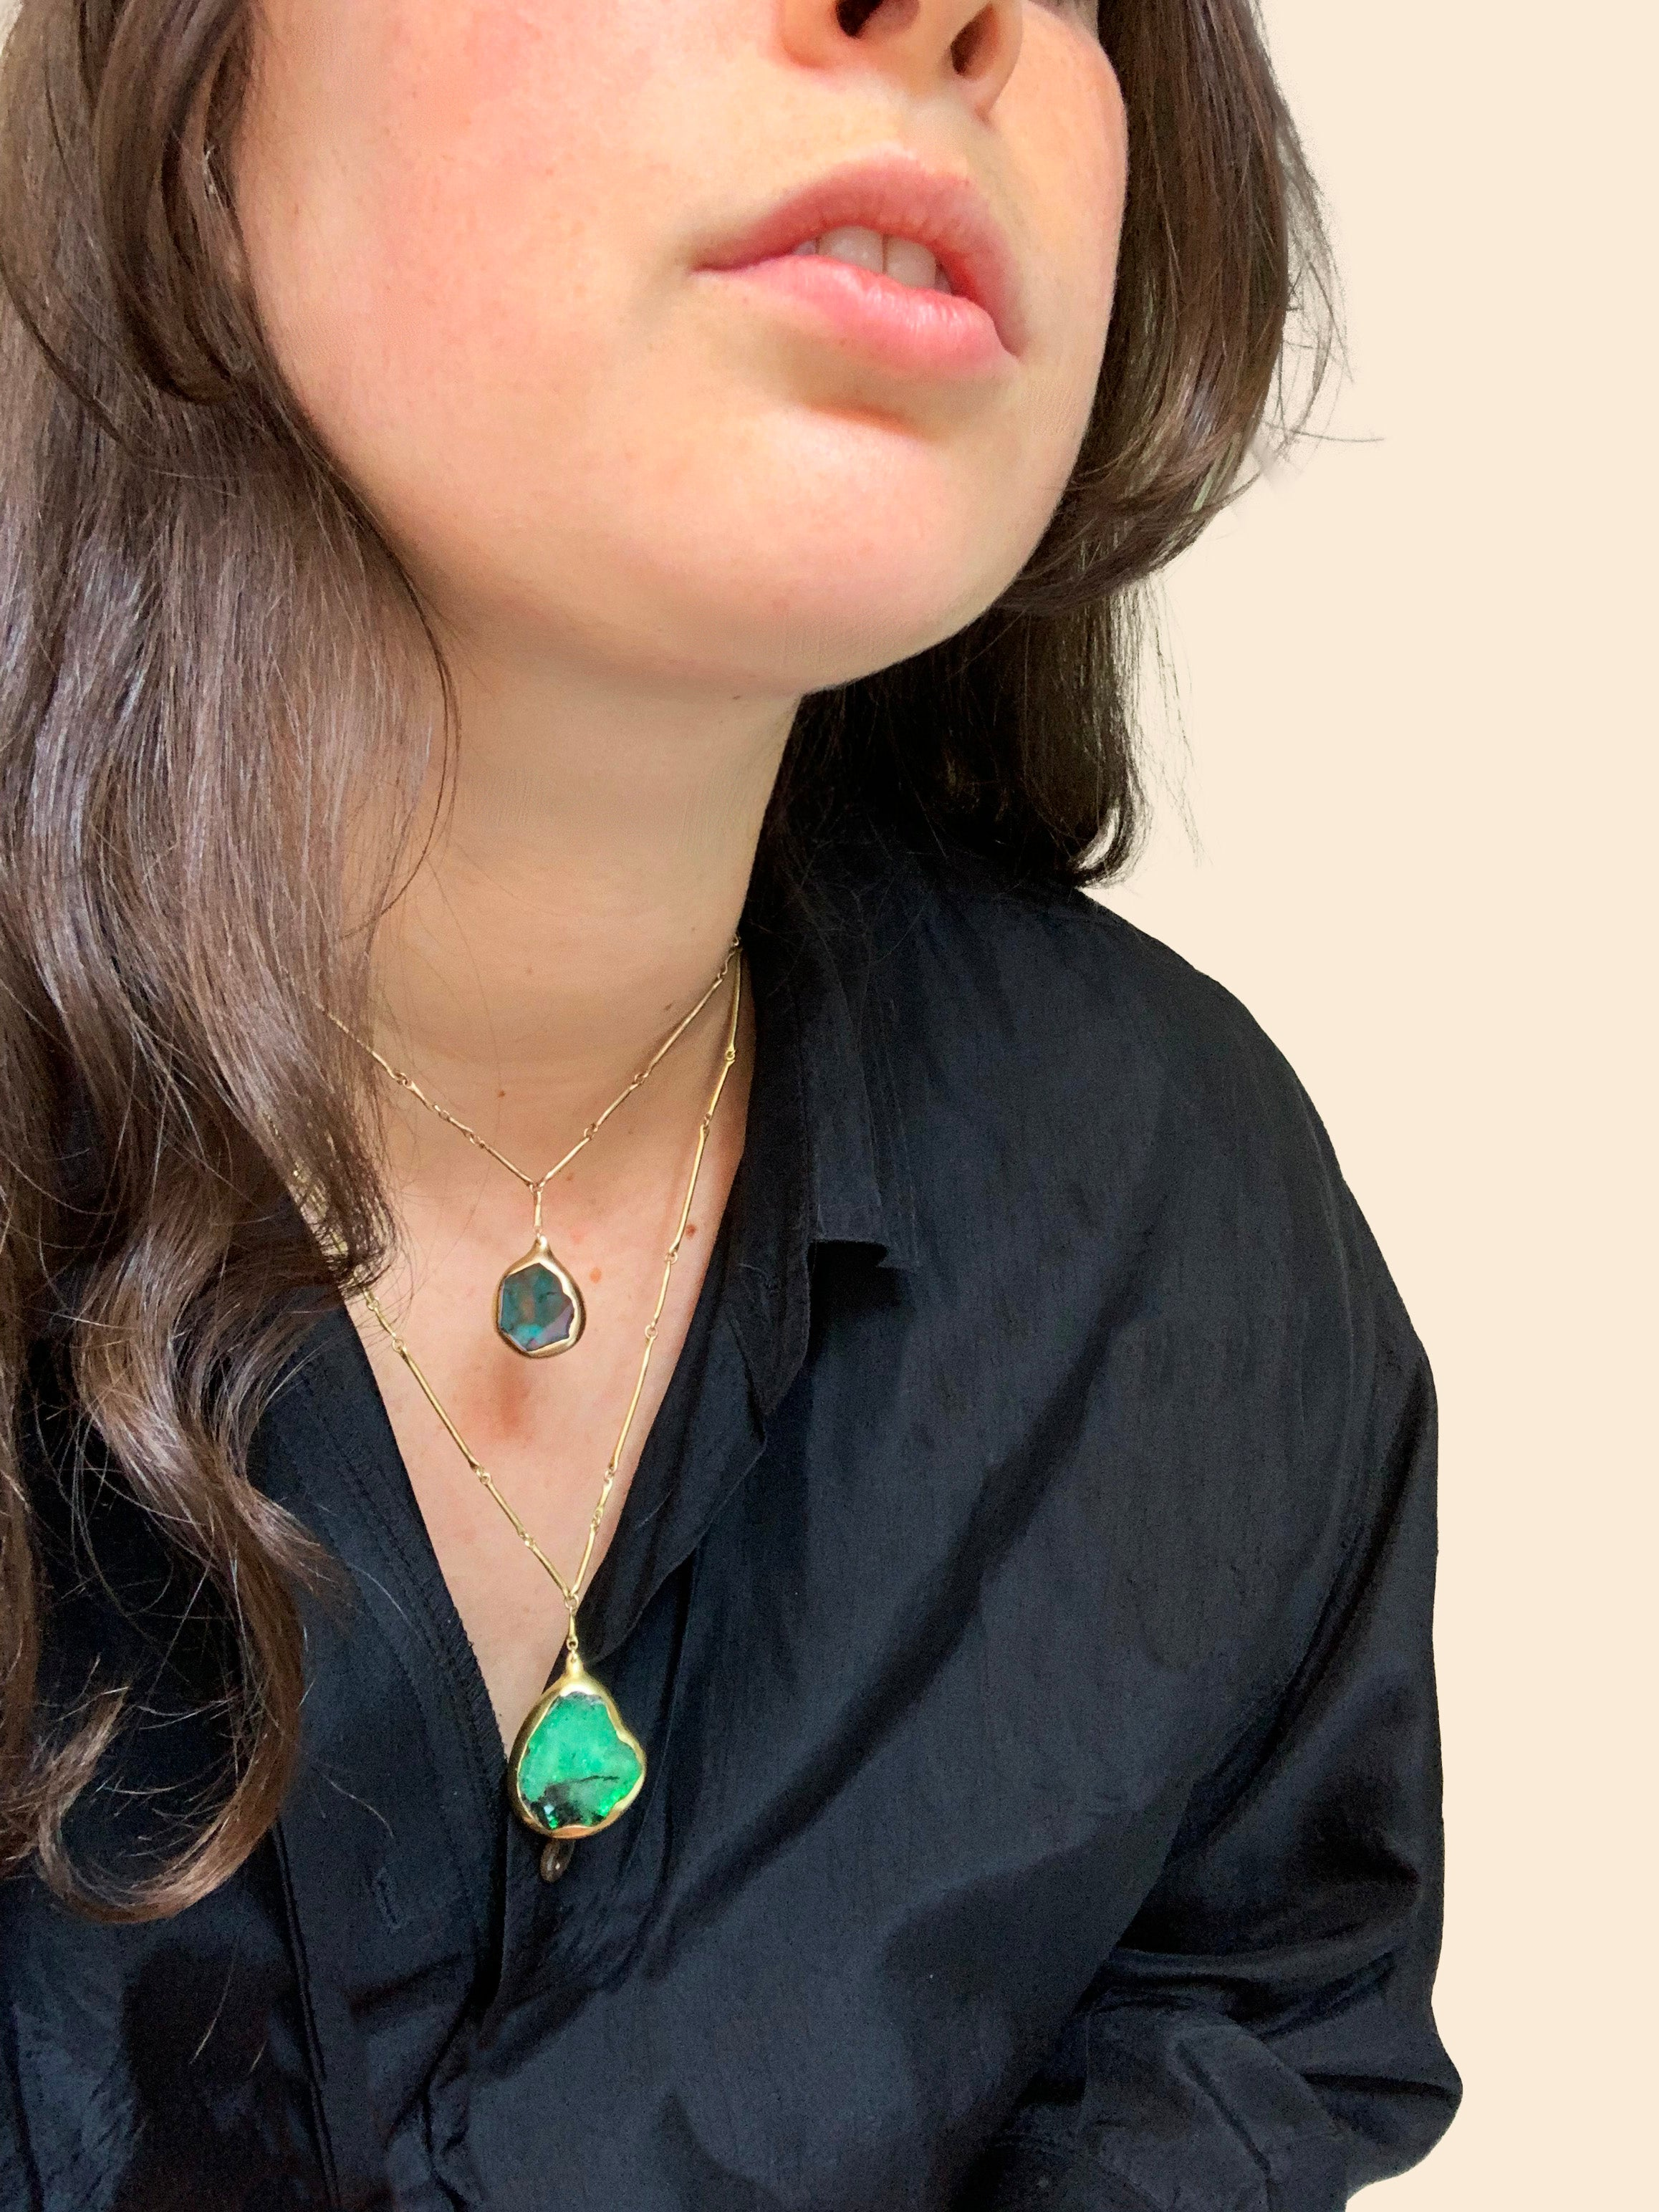 Blue Tormaline Pendant Necklace